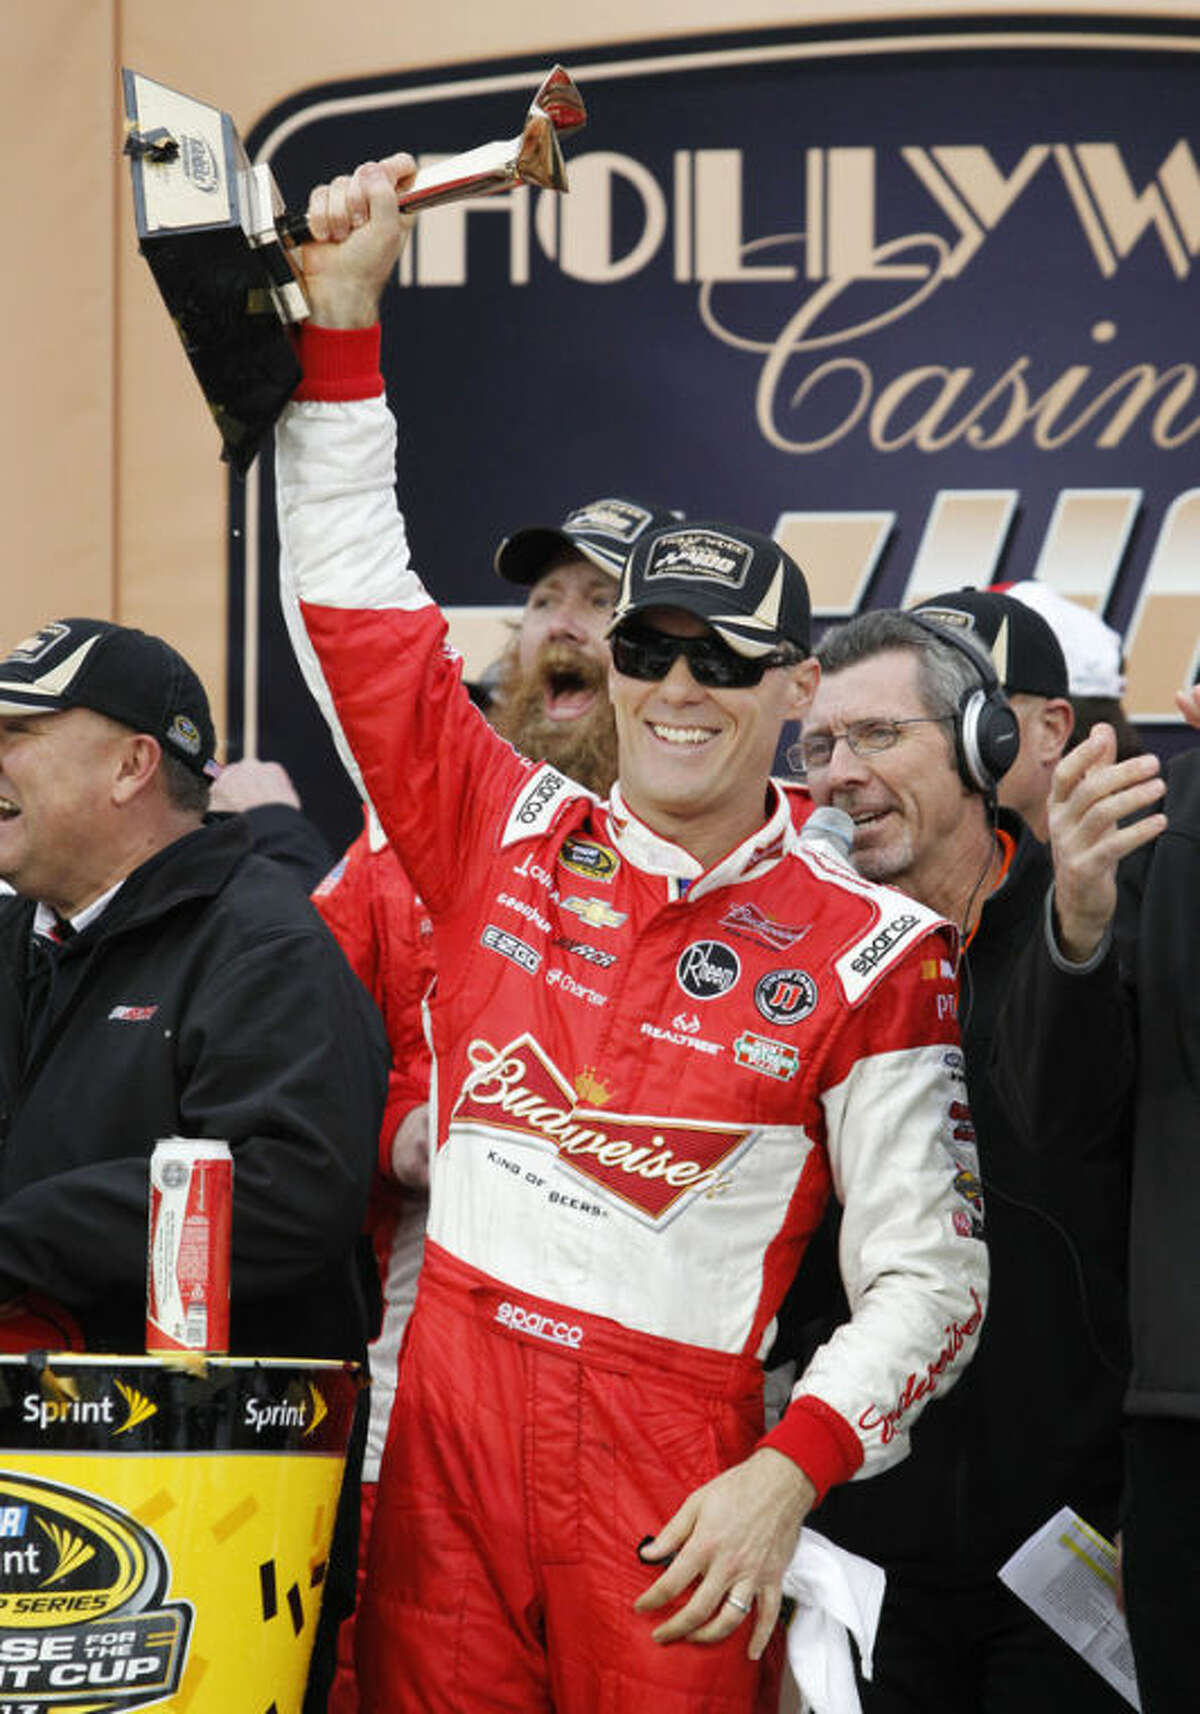 Driver Kevin Harvick celebrates in victory lane after winning the Hollywood Casino 400 NASCAR Sprint Cup series auto race at Kansas Speedway in Kansas City, Kan., Sunday, Oct. 6, 2013. (AP Photo/Colin E. Braley)